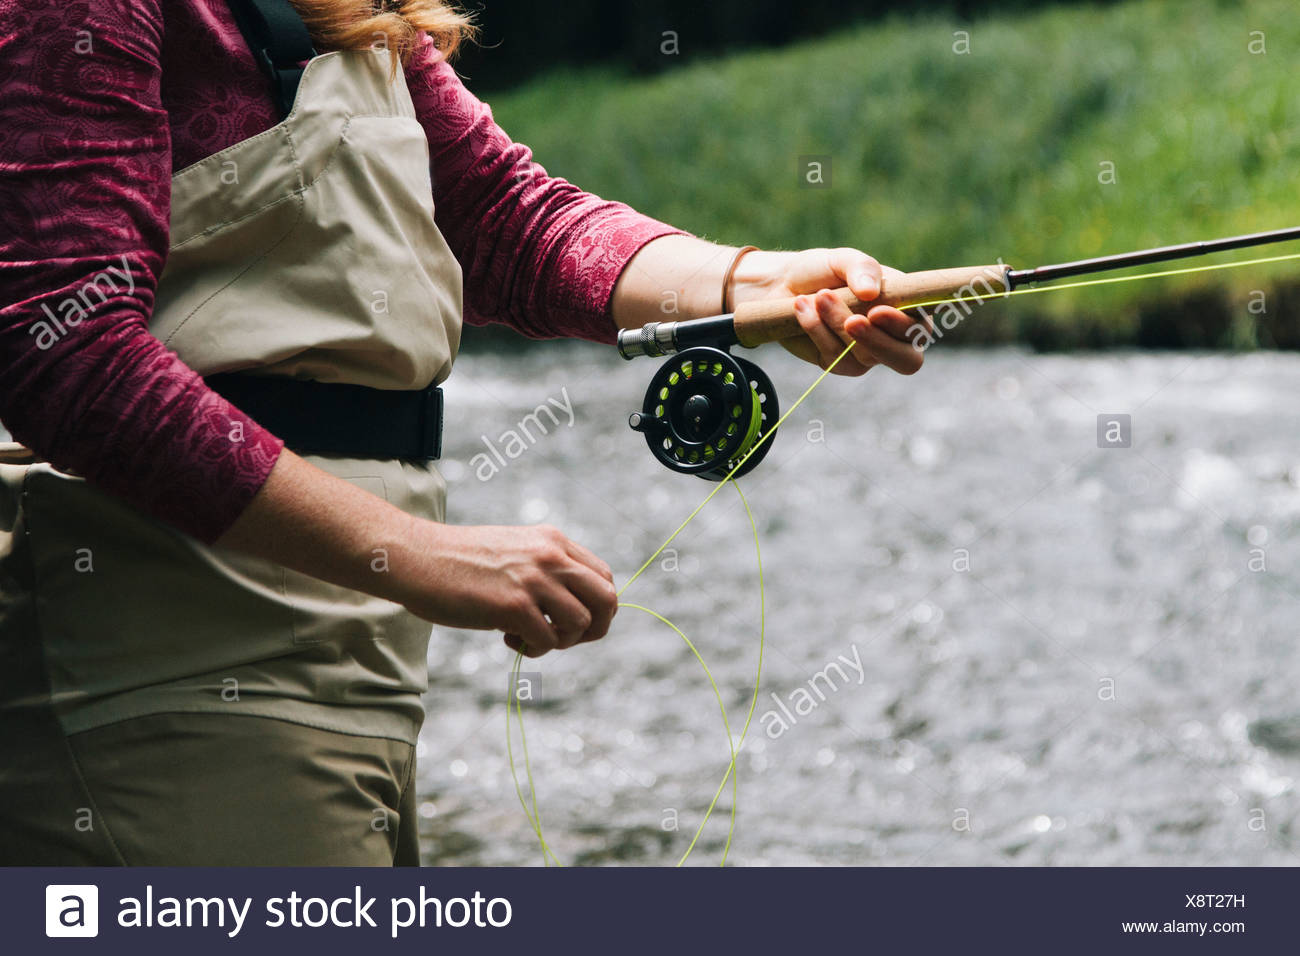 Fly fishing Oregon. - Stock Image